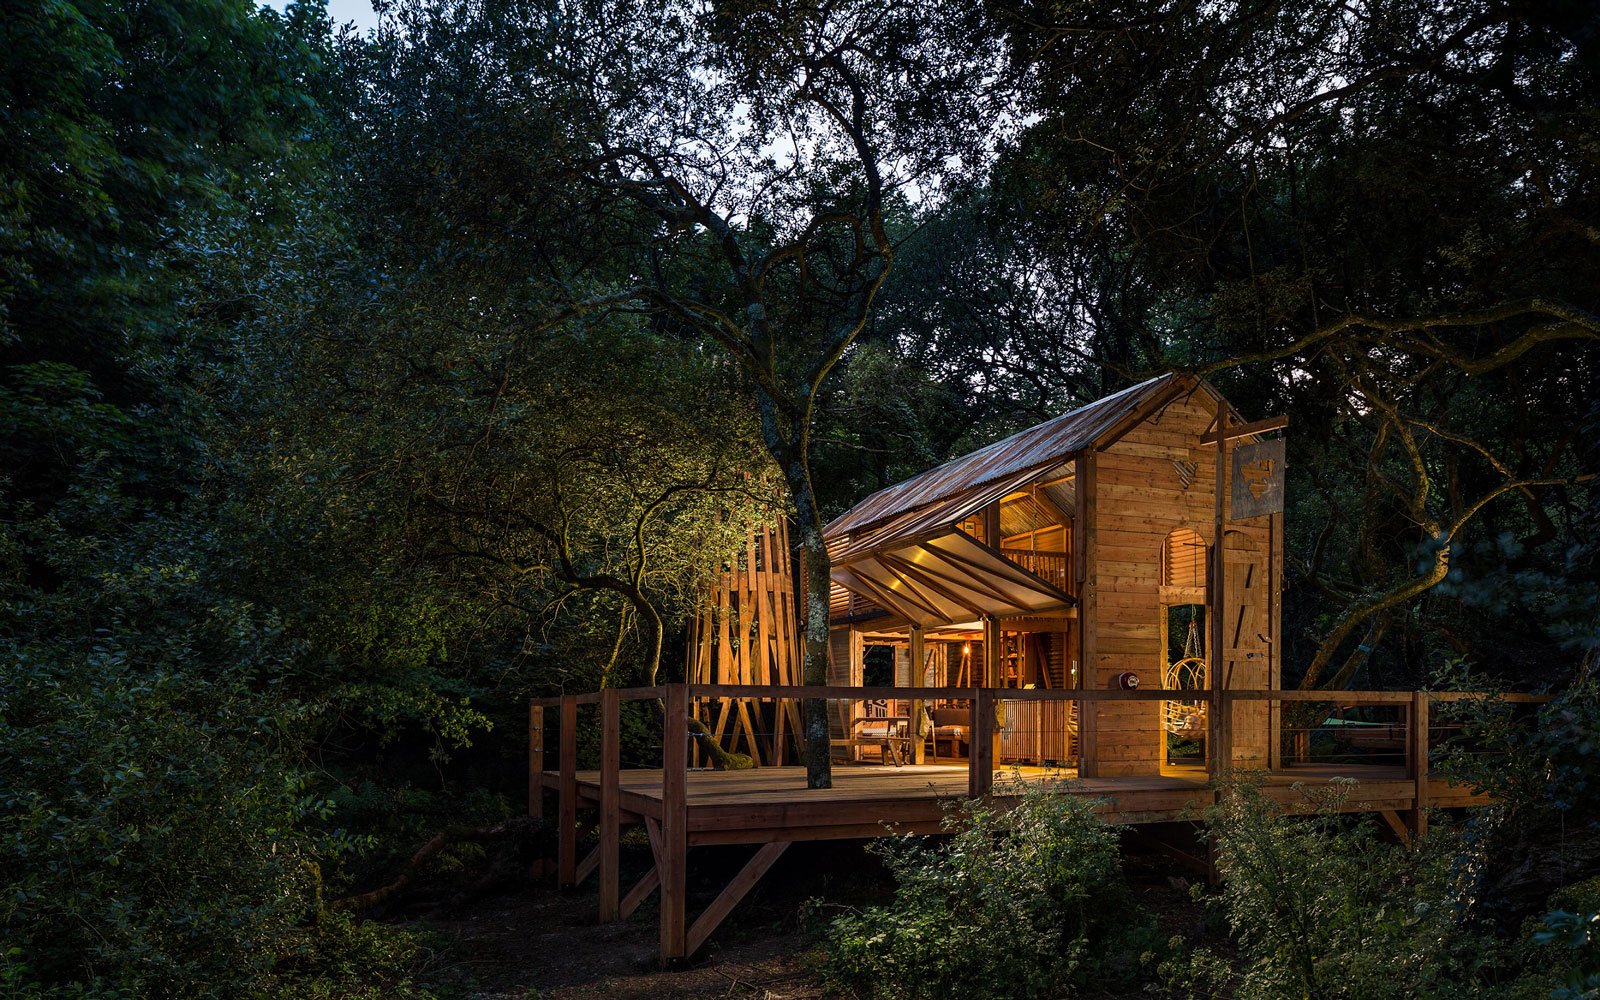 The Carlsberg cabin sits in the middle of a forest and is powered by the sun and nearby waterfalls.